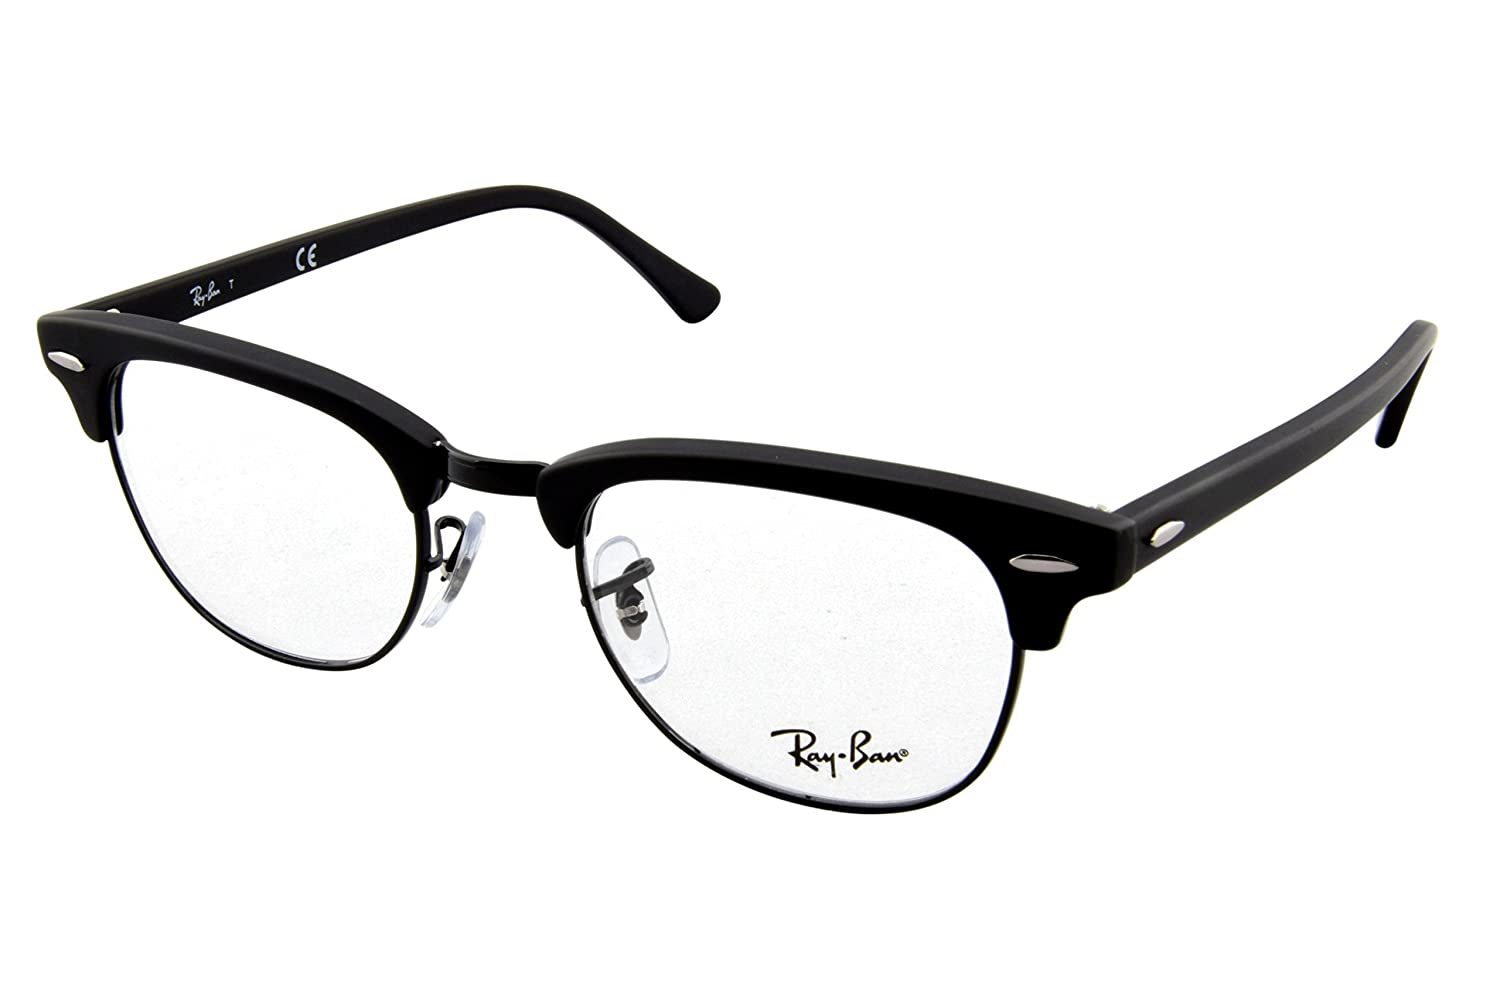 ray ban clubmaster gold frame 6zv2  ray-ban  clubmaster